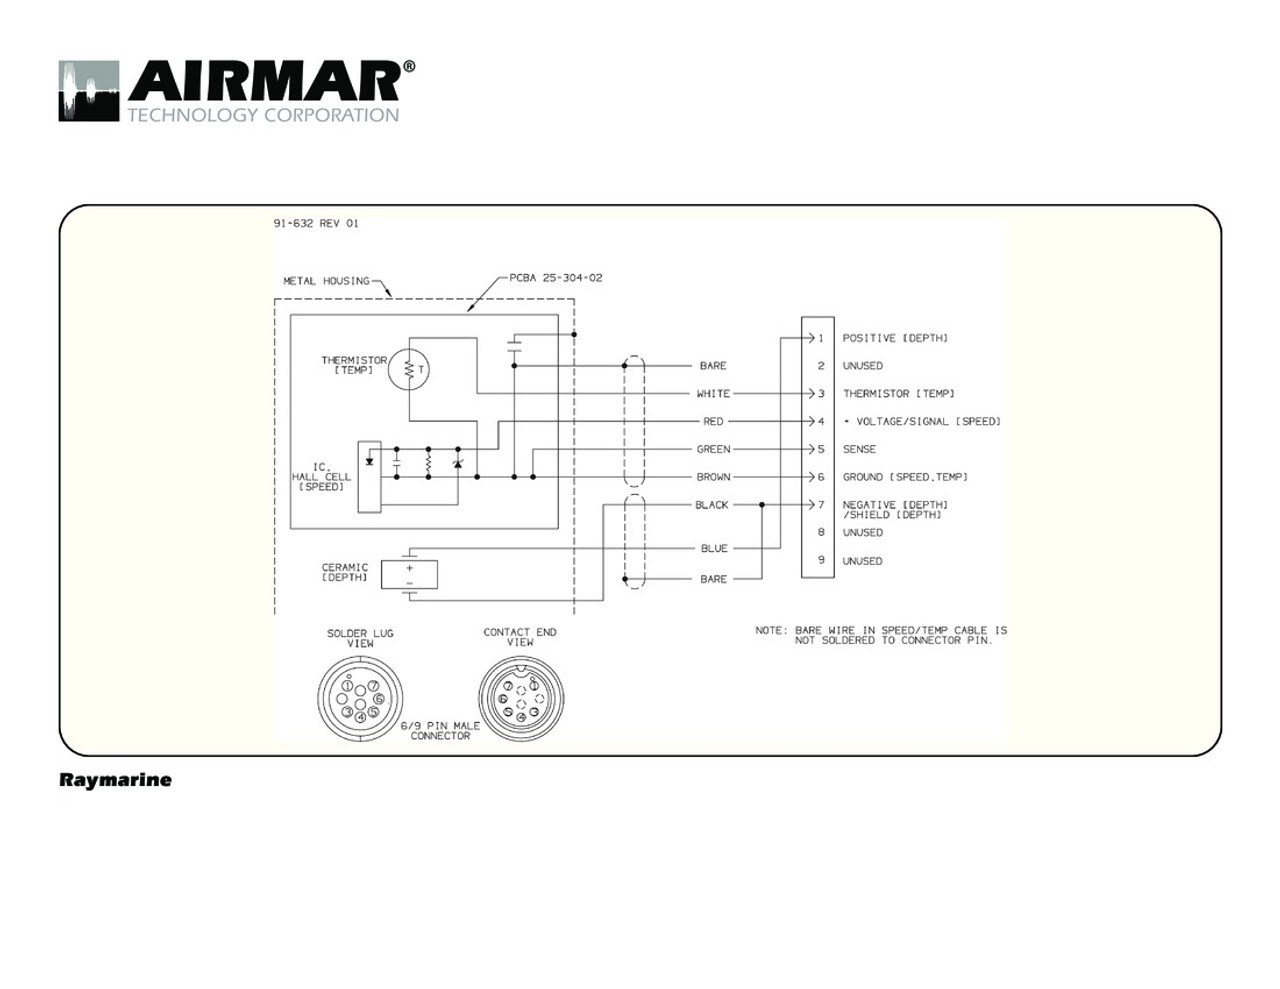 medium resolution of depth speed temperature transducers for raymarine a series with raymarine 9 pin airmar wiring diagram